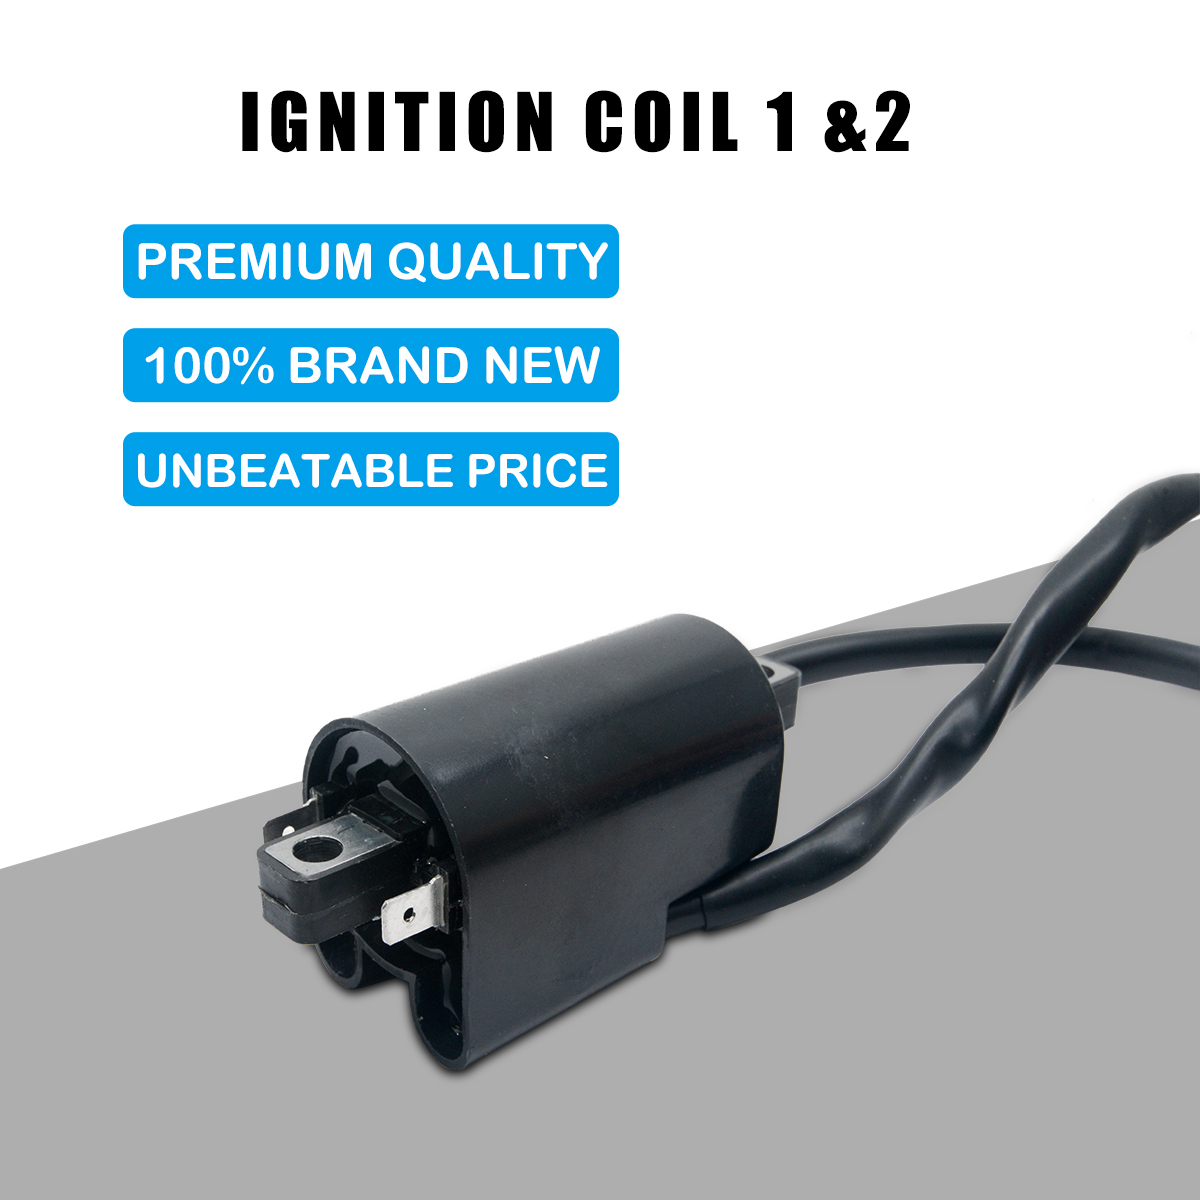 Ignition coil 1 2 for Suzuki GSF400 GSF600 GSF1200 Bandit GSF 400 600 1200